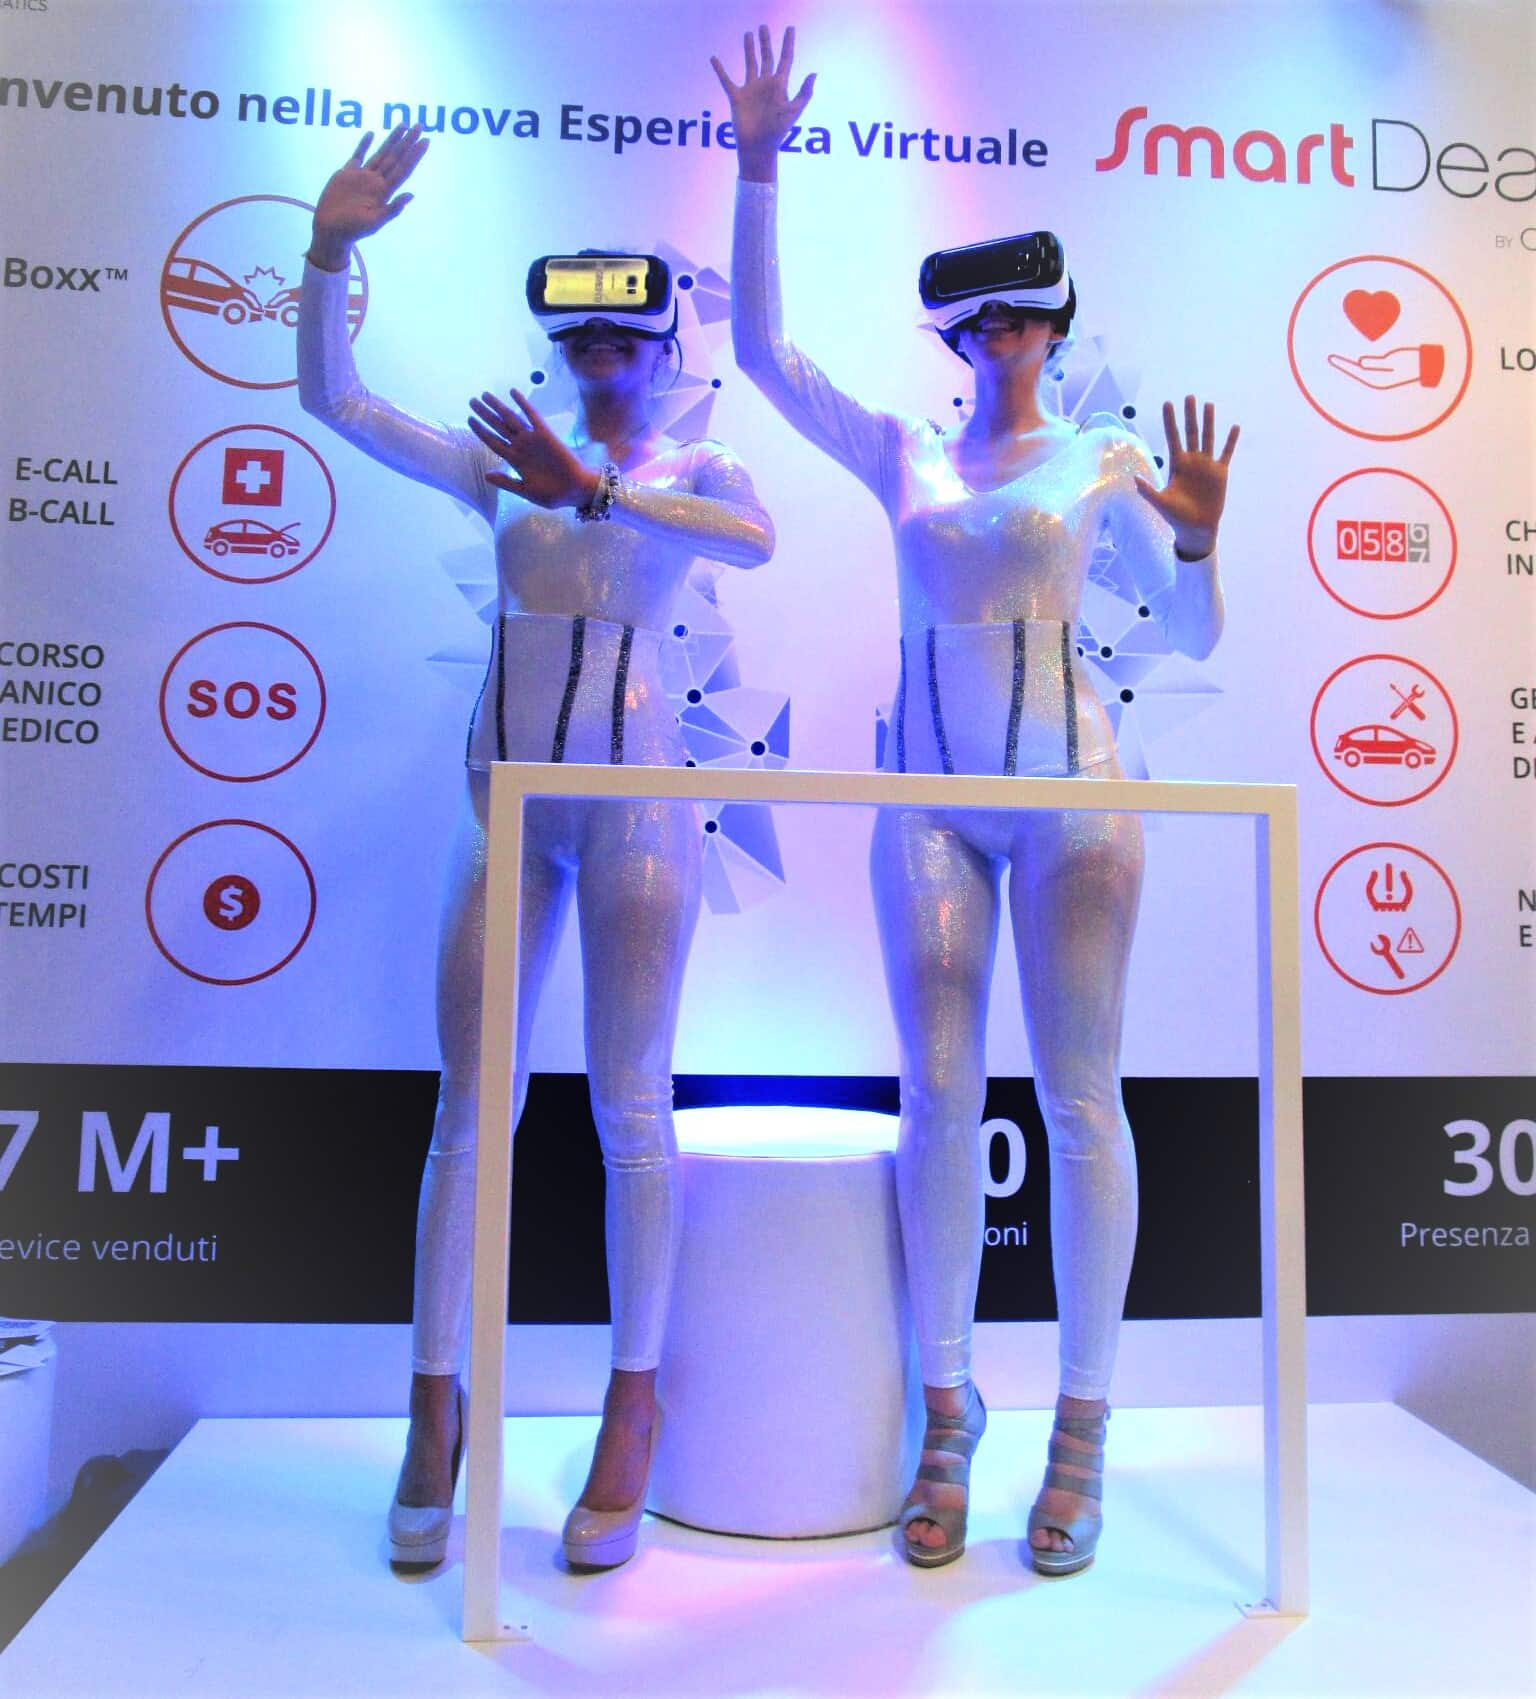 Digital device and augmented reality - Hostesses and promoters